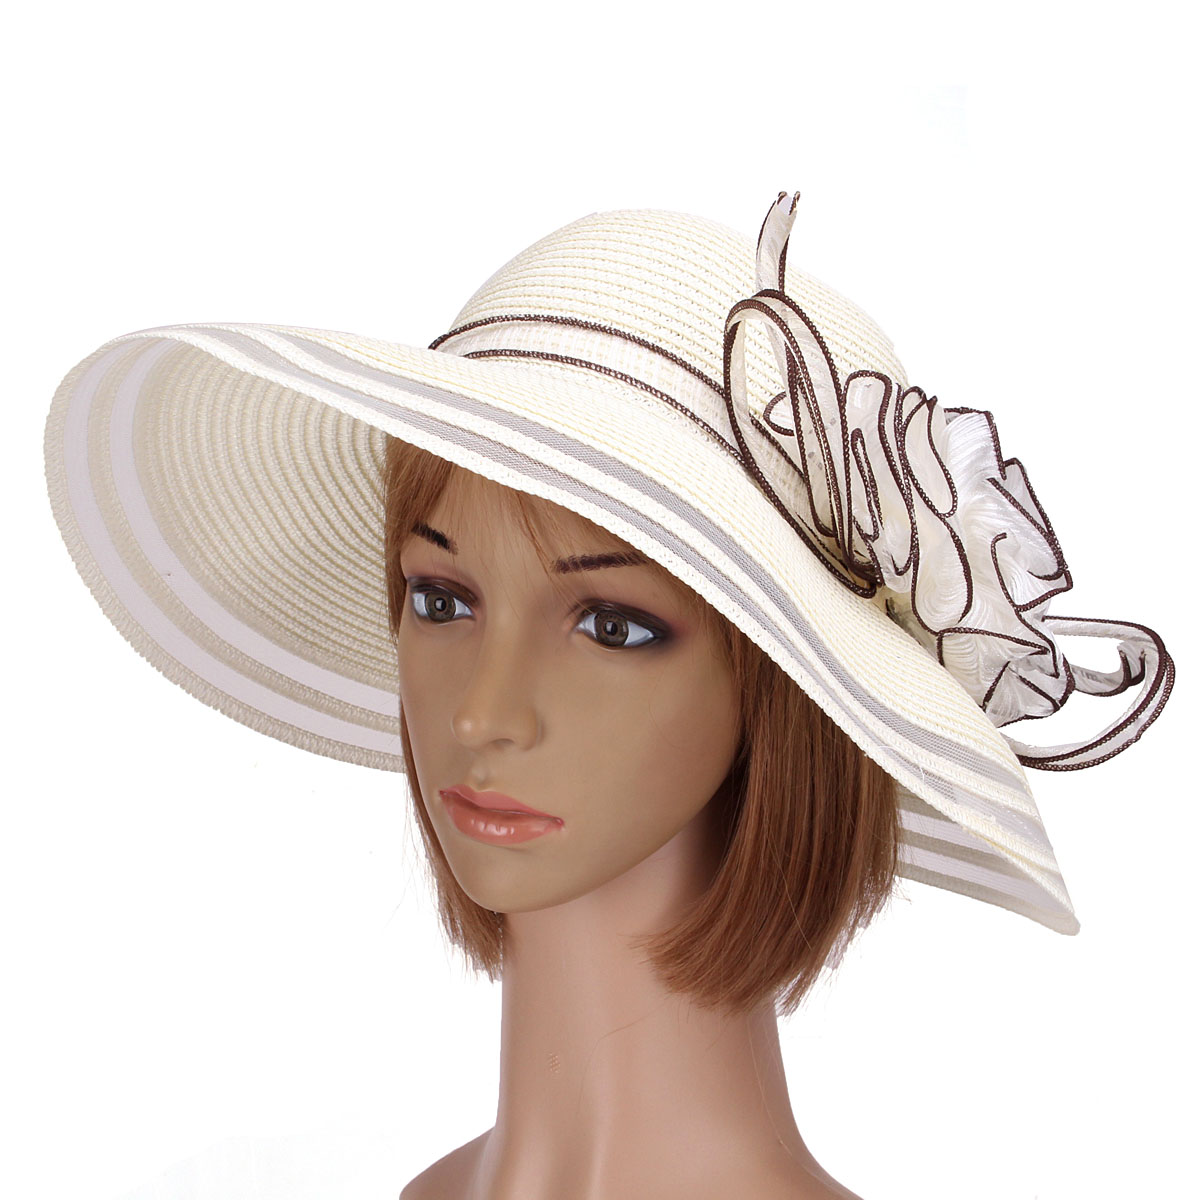 Women's Hats, Fashion Hats, Womens Straw Hats at Lulus 81